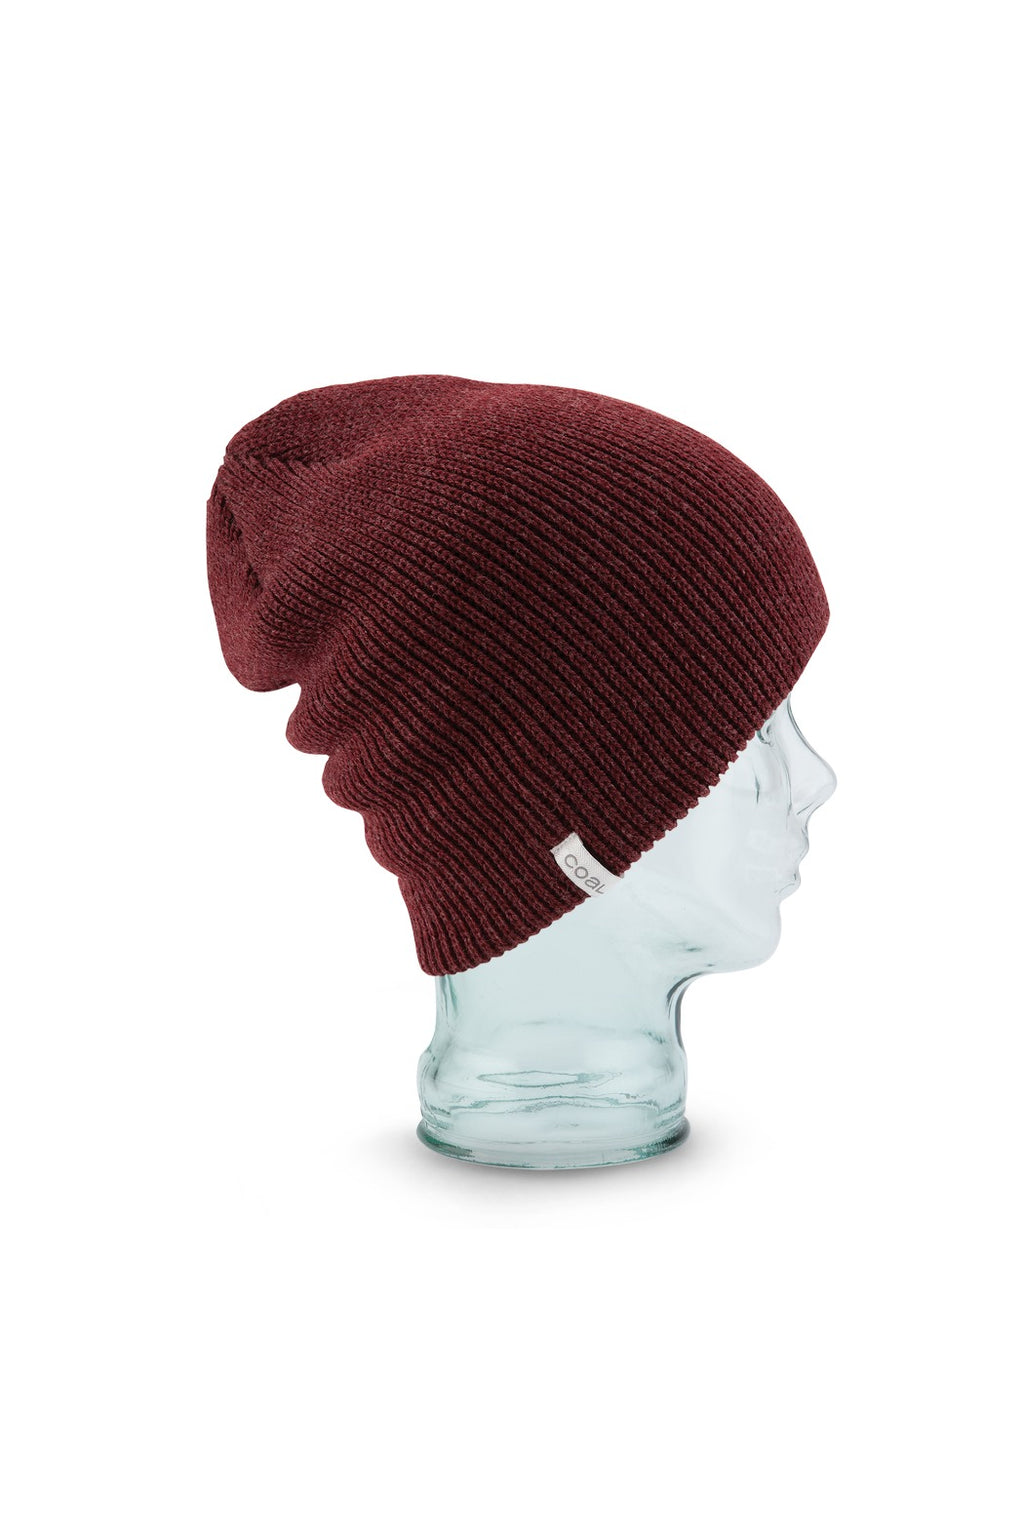 Coal Frena Solid Beanie in Heather Burgundy